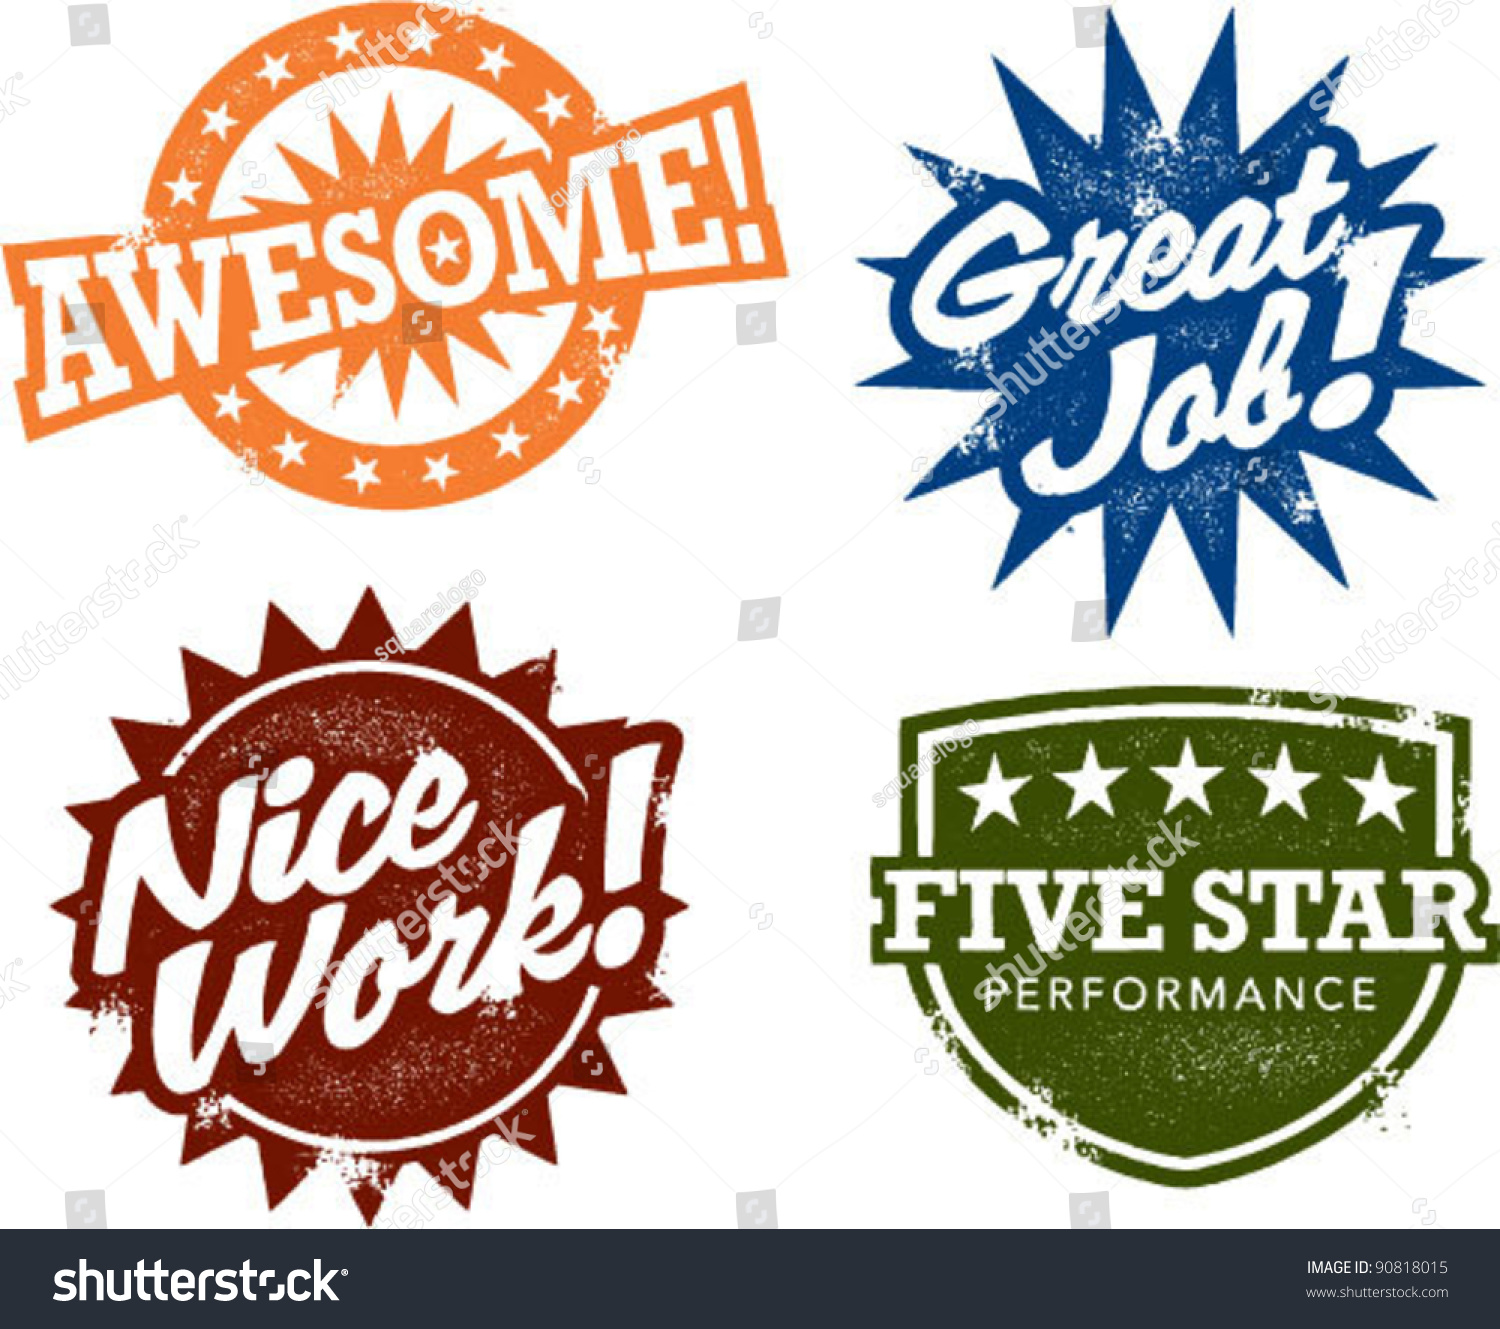 awesome work award stamps stock vector 90818015 shutterstock